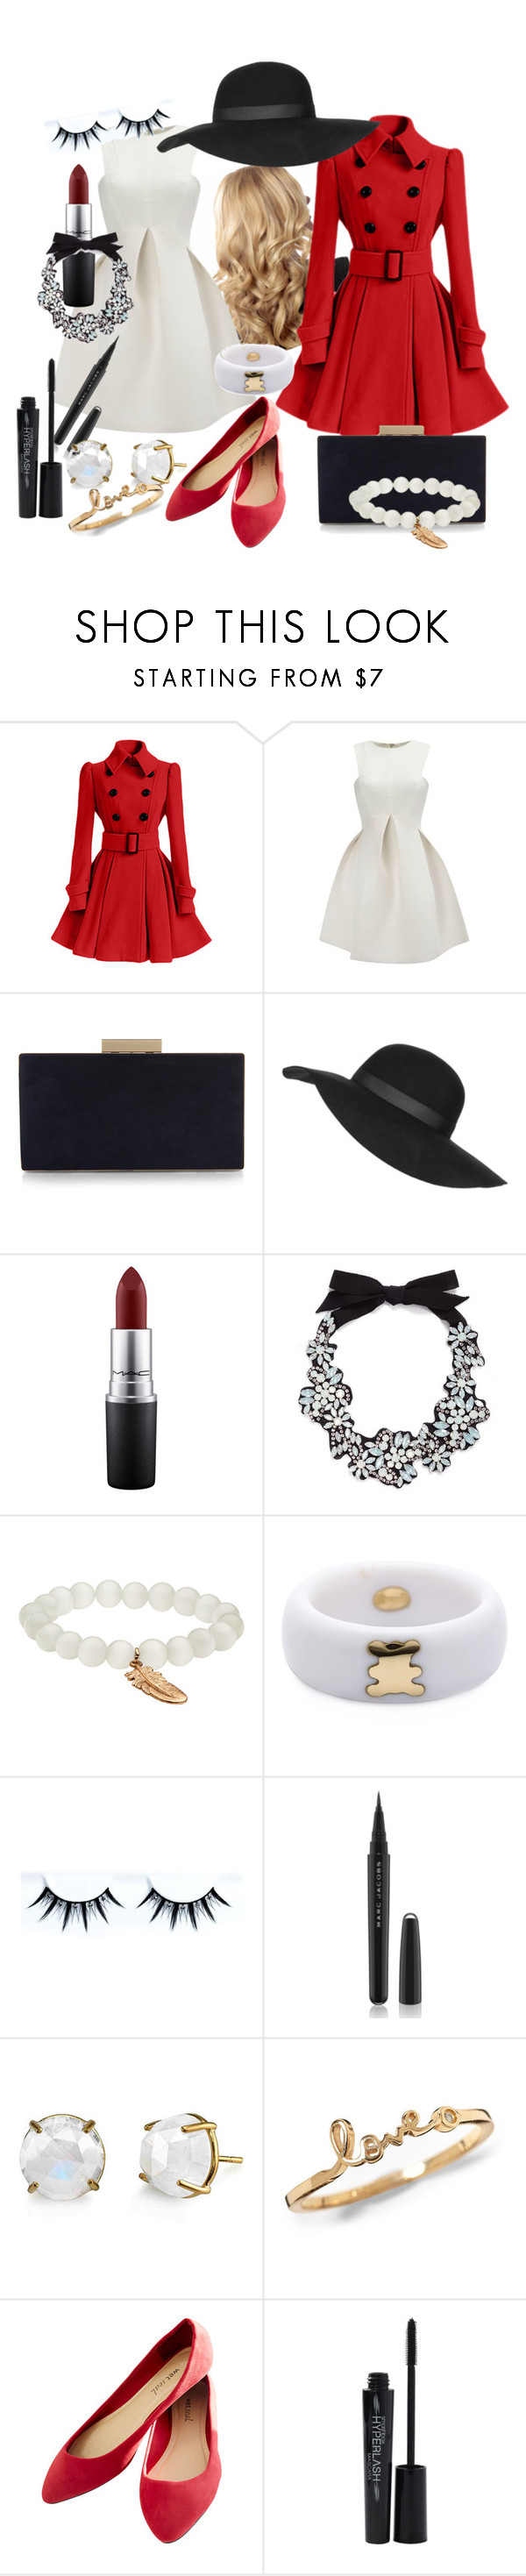 """""""No: 105"""" by crista-yorker ❤ liked on Polyvore featuring WithChic, Monsoon, Topshop, MAC Cosmetics, J.Crew, Aéropostale, Kristin Hanson, Marc Jacobs, Wet Seal and Smashbox"""